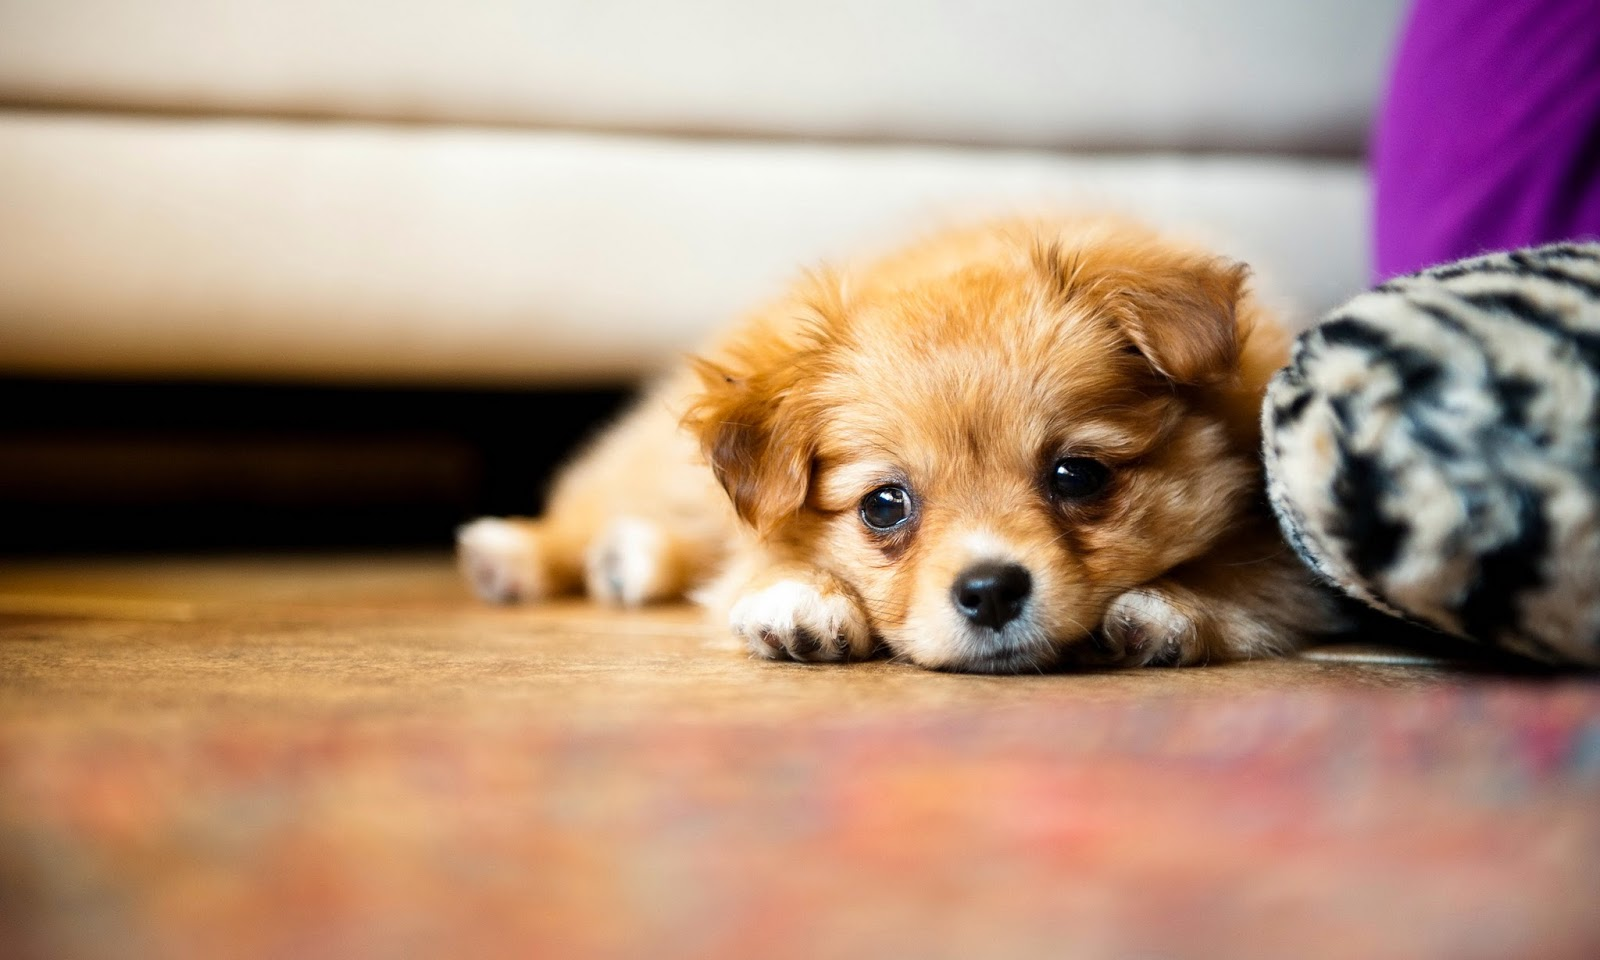 Pin By Bill Ferris On Photography Cute Little Puppies Cute Puppy